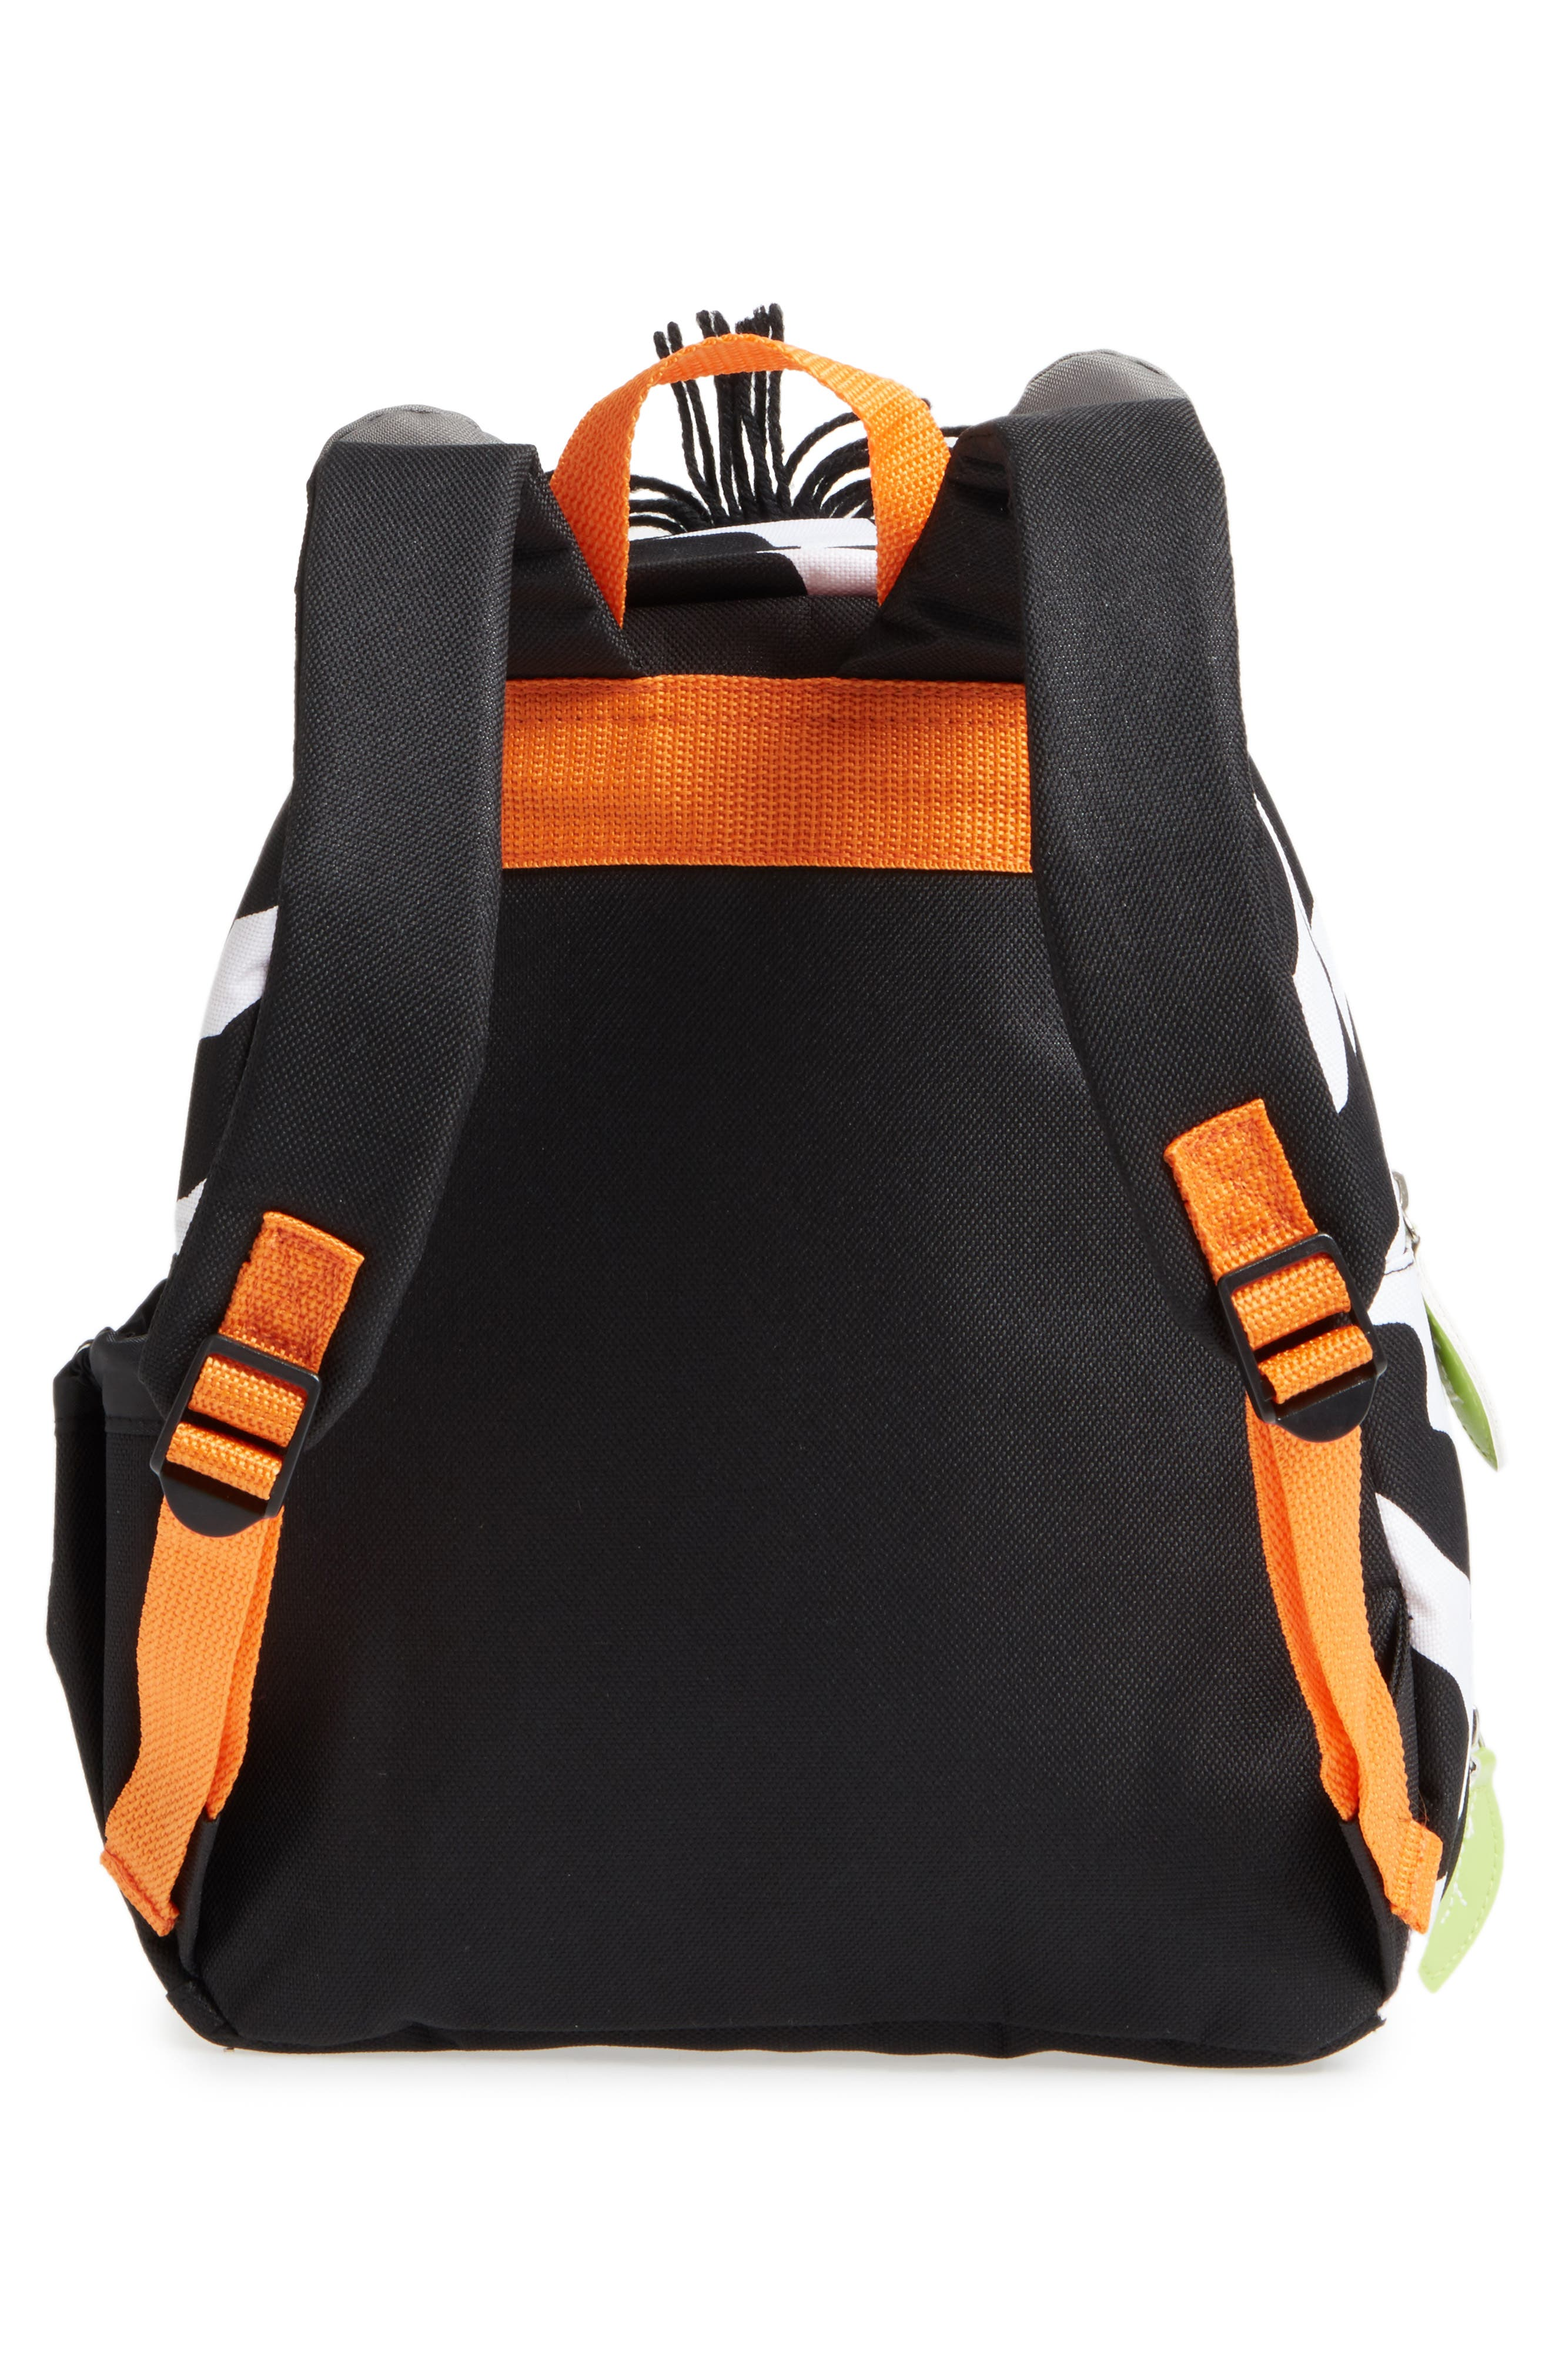 Zoo Pack Backpack,                             Alternate thumbnail 51, color,